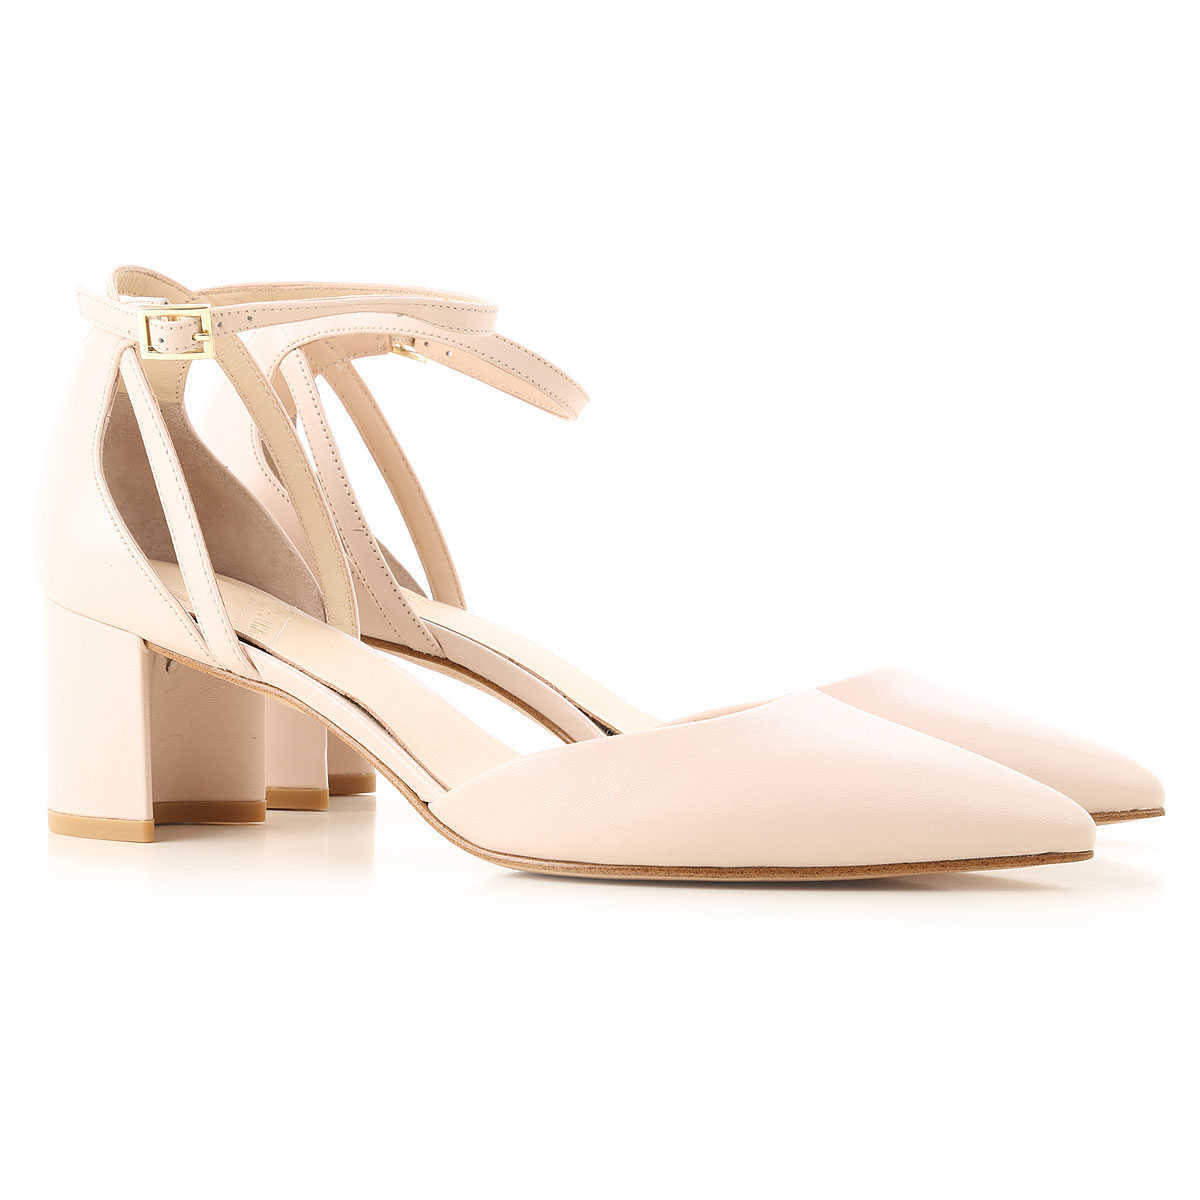 What For Pumps & High Heels for Women On Sale Nude DK - GOOFASH - Womens HIGH HEELS